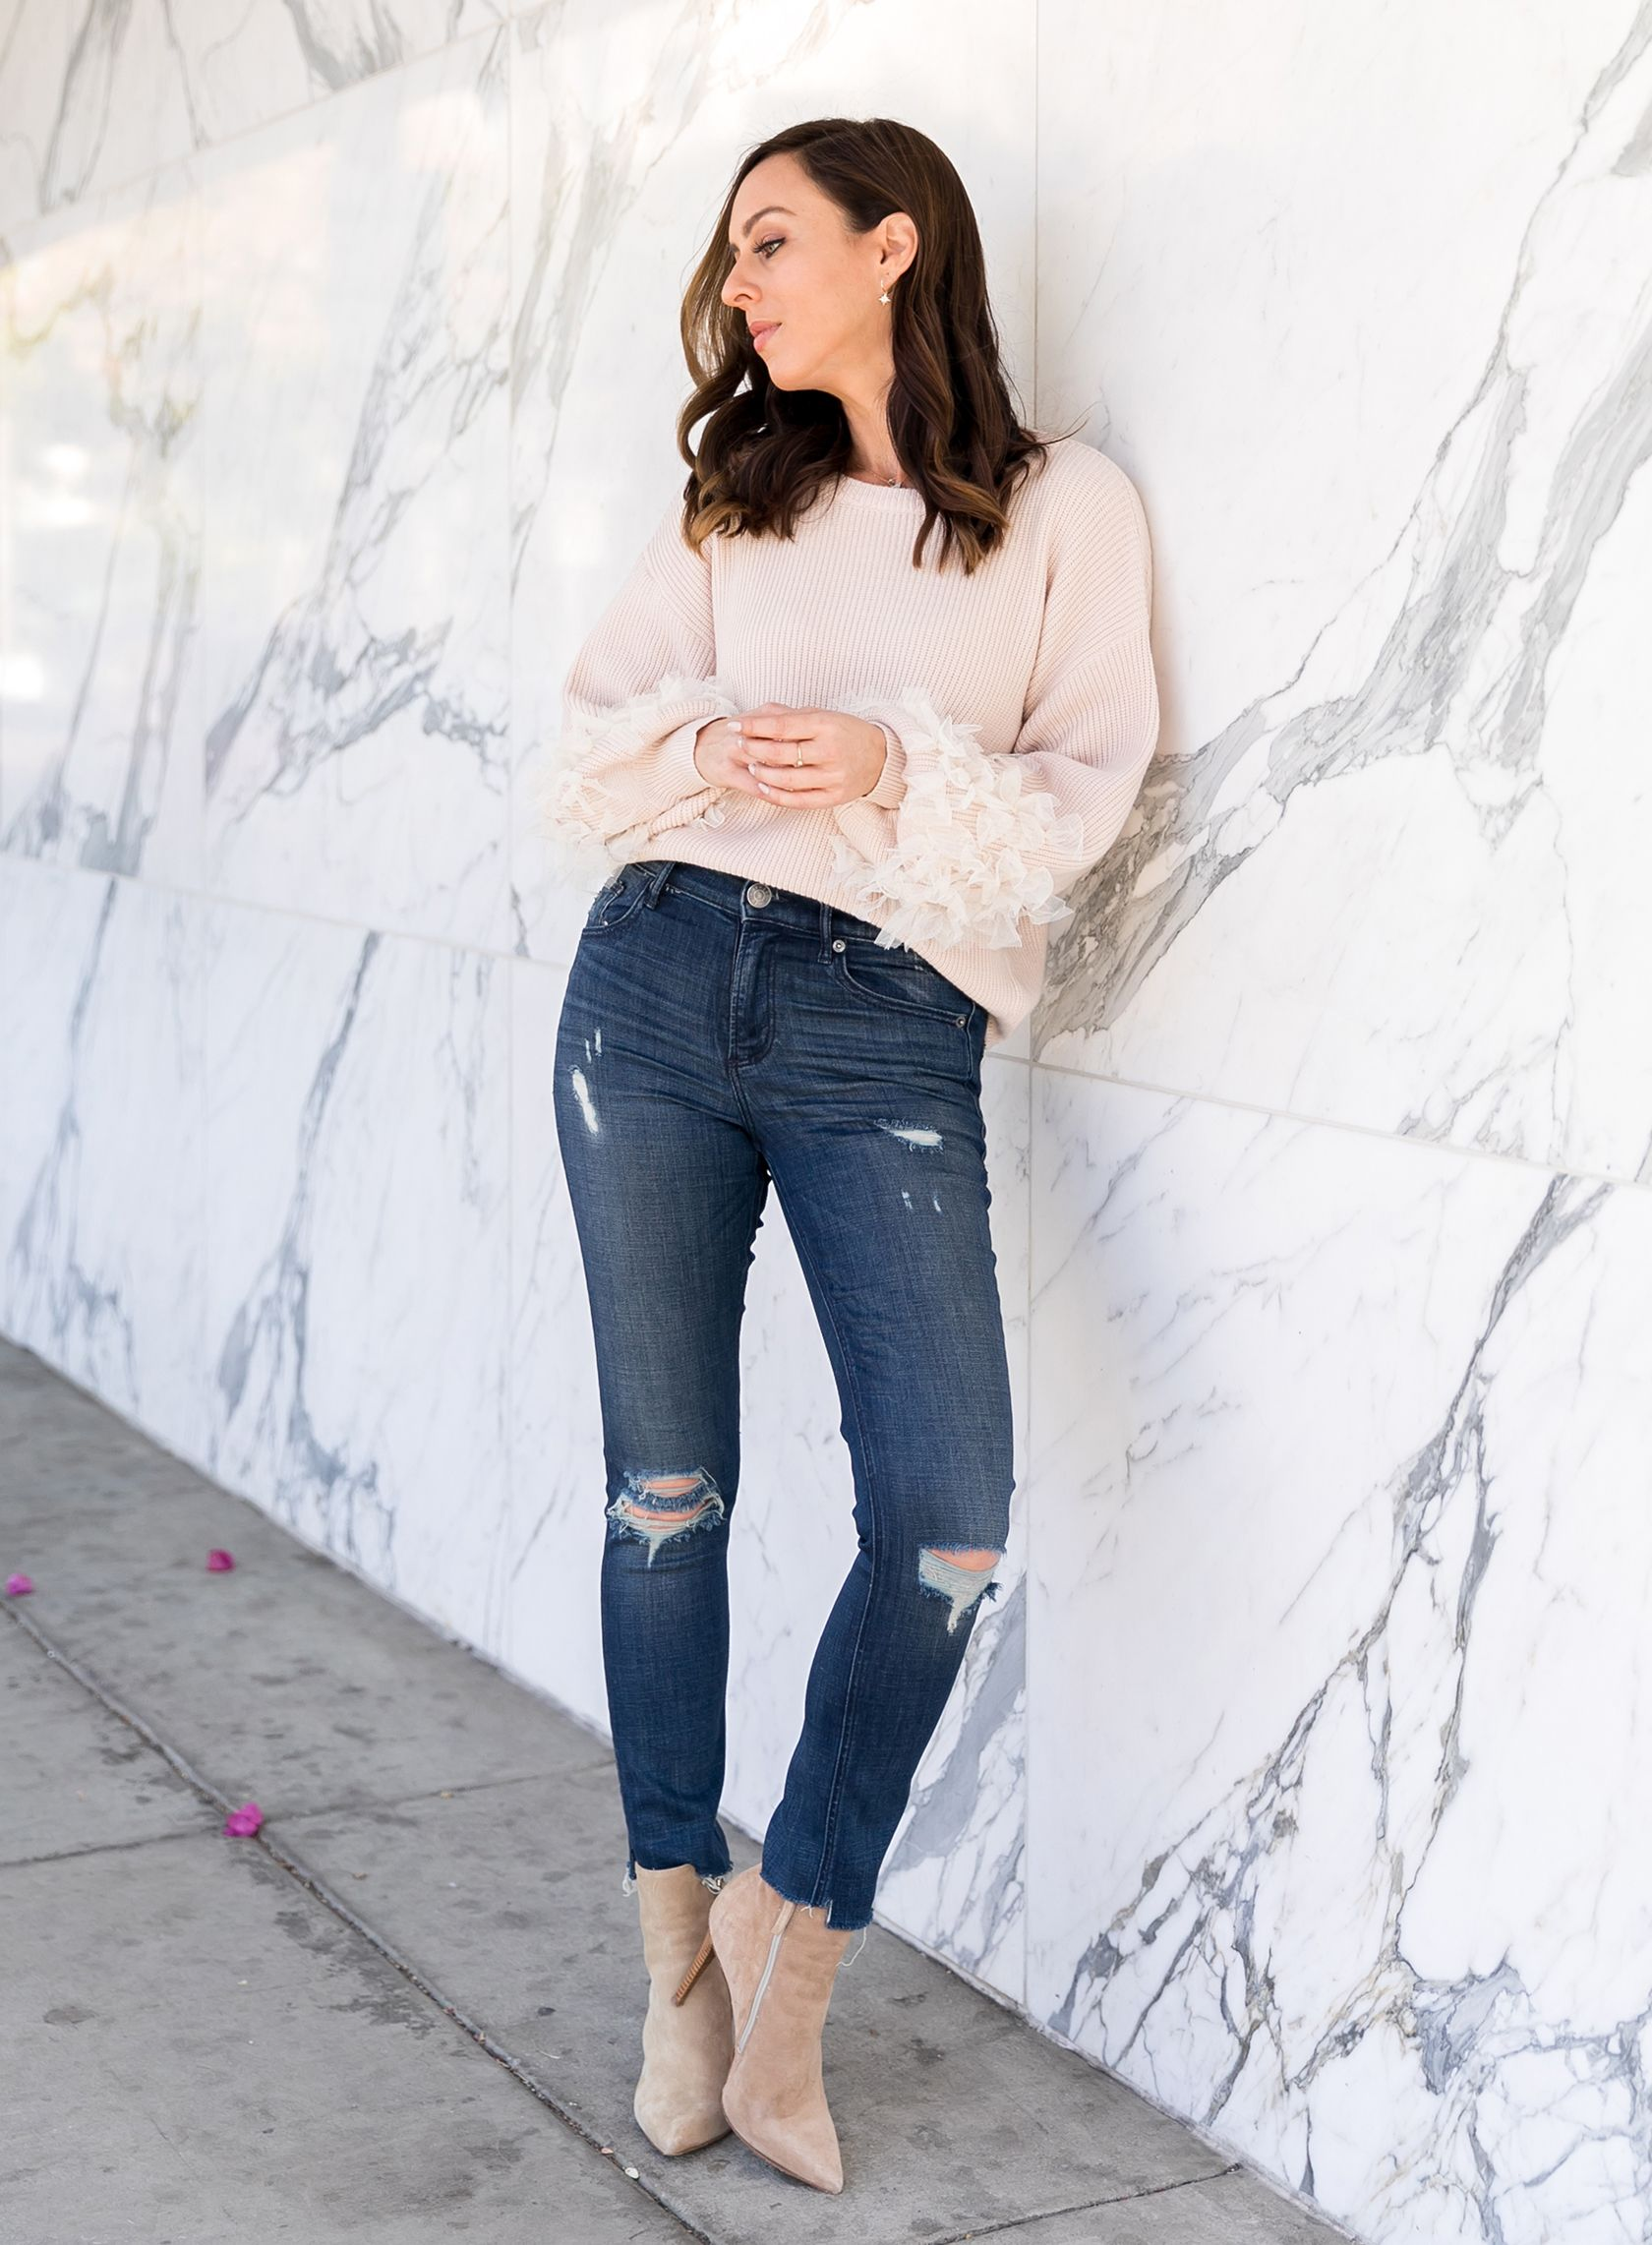 5965e39f84918 Sydne Style wears forever 21 tulle sleeve sweater #tulle #jeans #sweaters  #booties #marble @sydnesummer